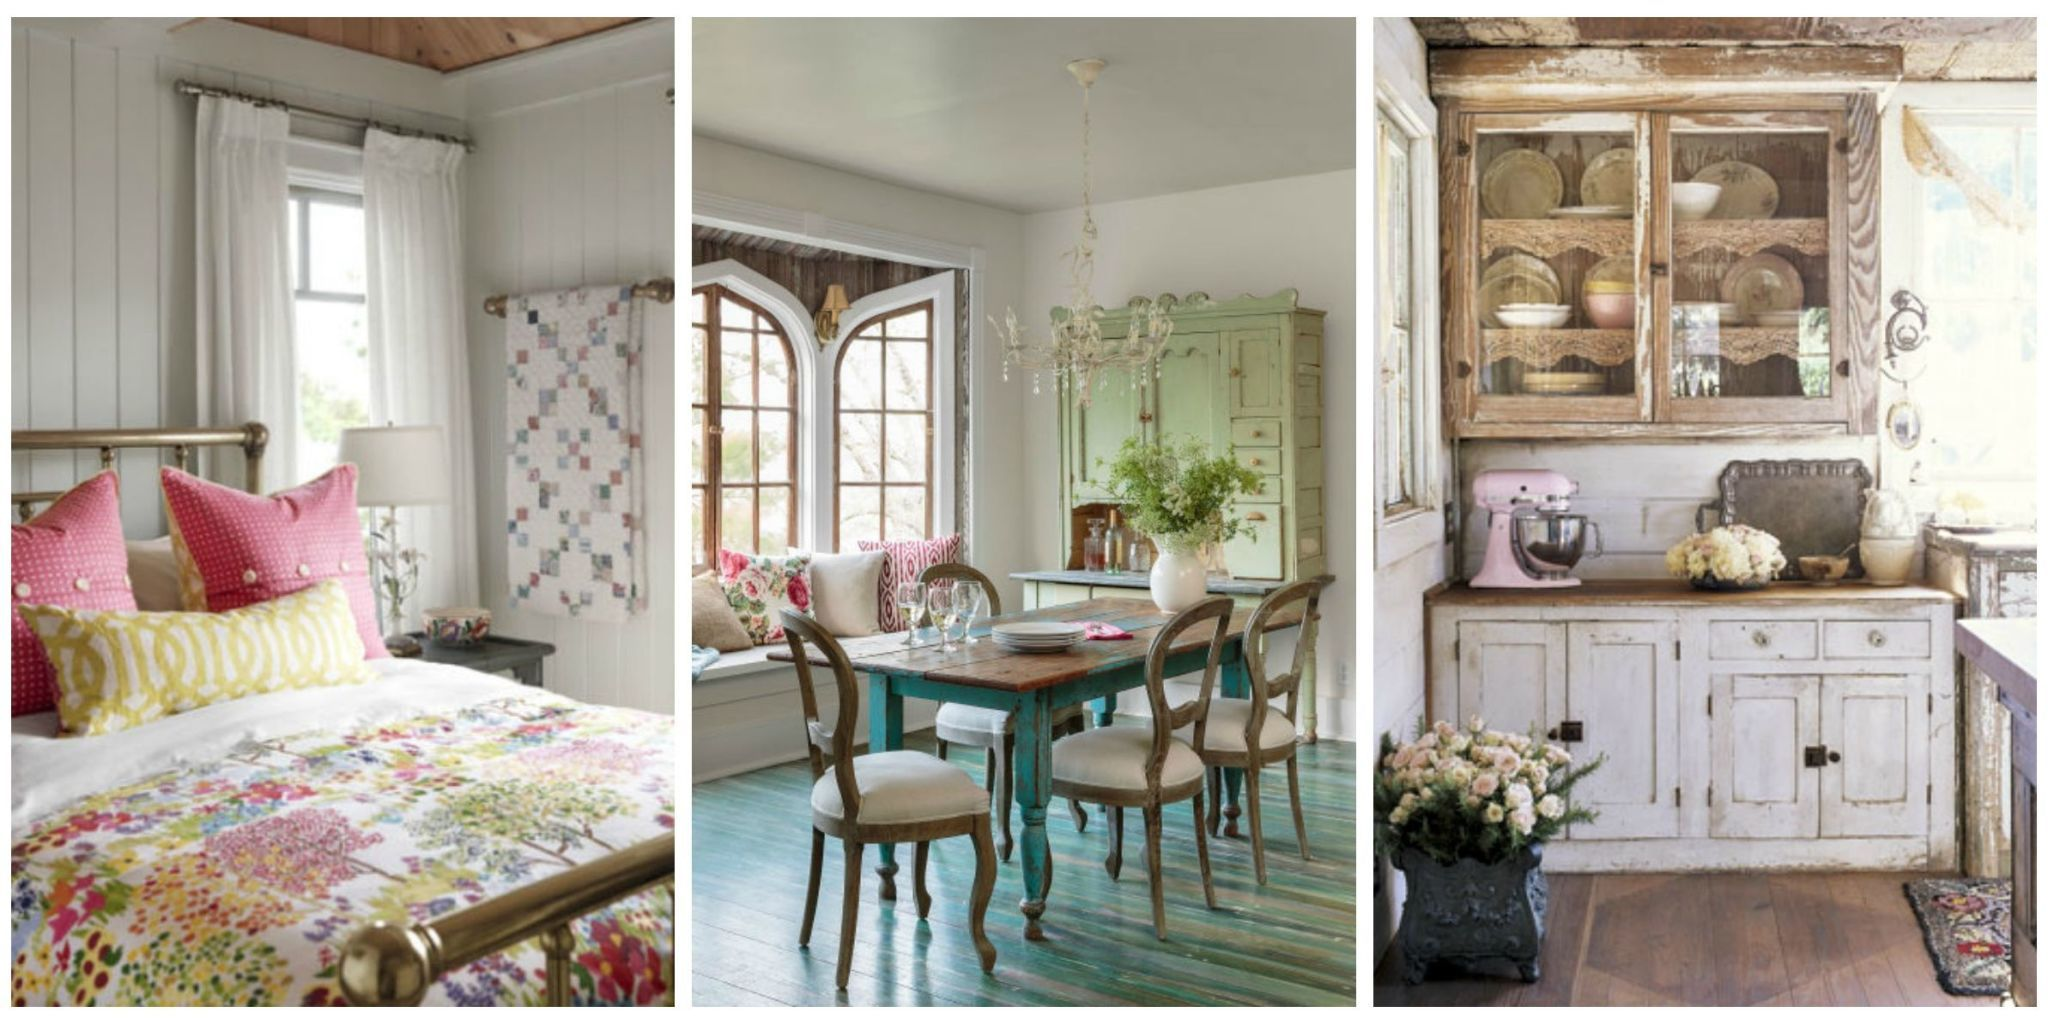 Perfect From California To Connecticut, These Country Cottage Getaways Are Filled  With Inspiring Decorating Ideas For Cozy Spaces.